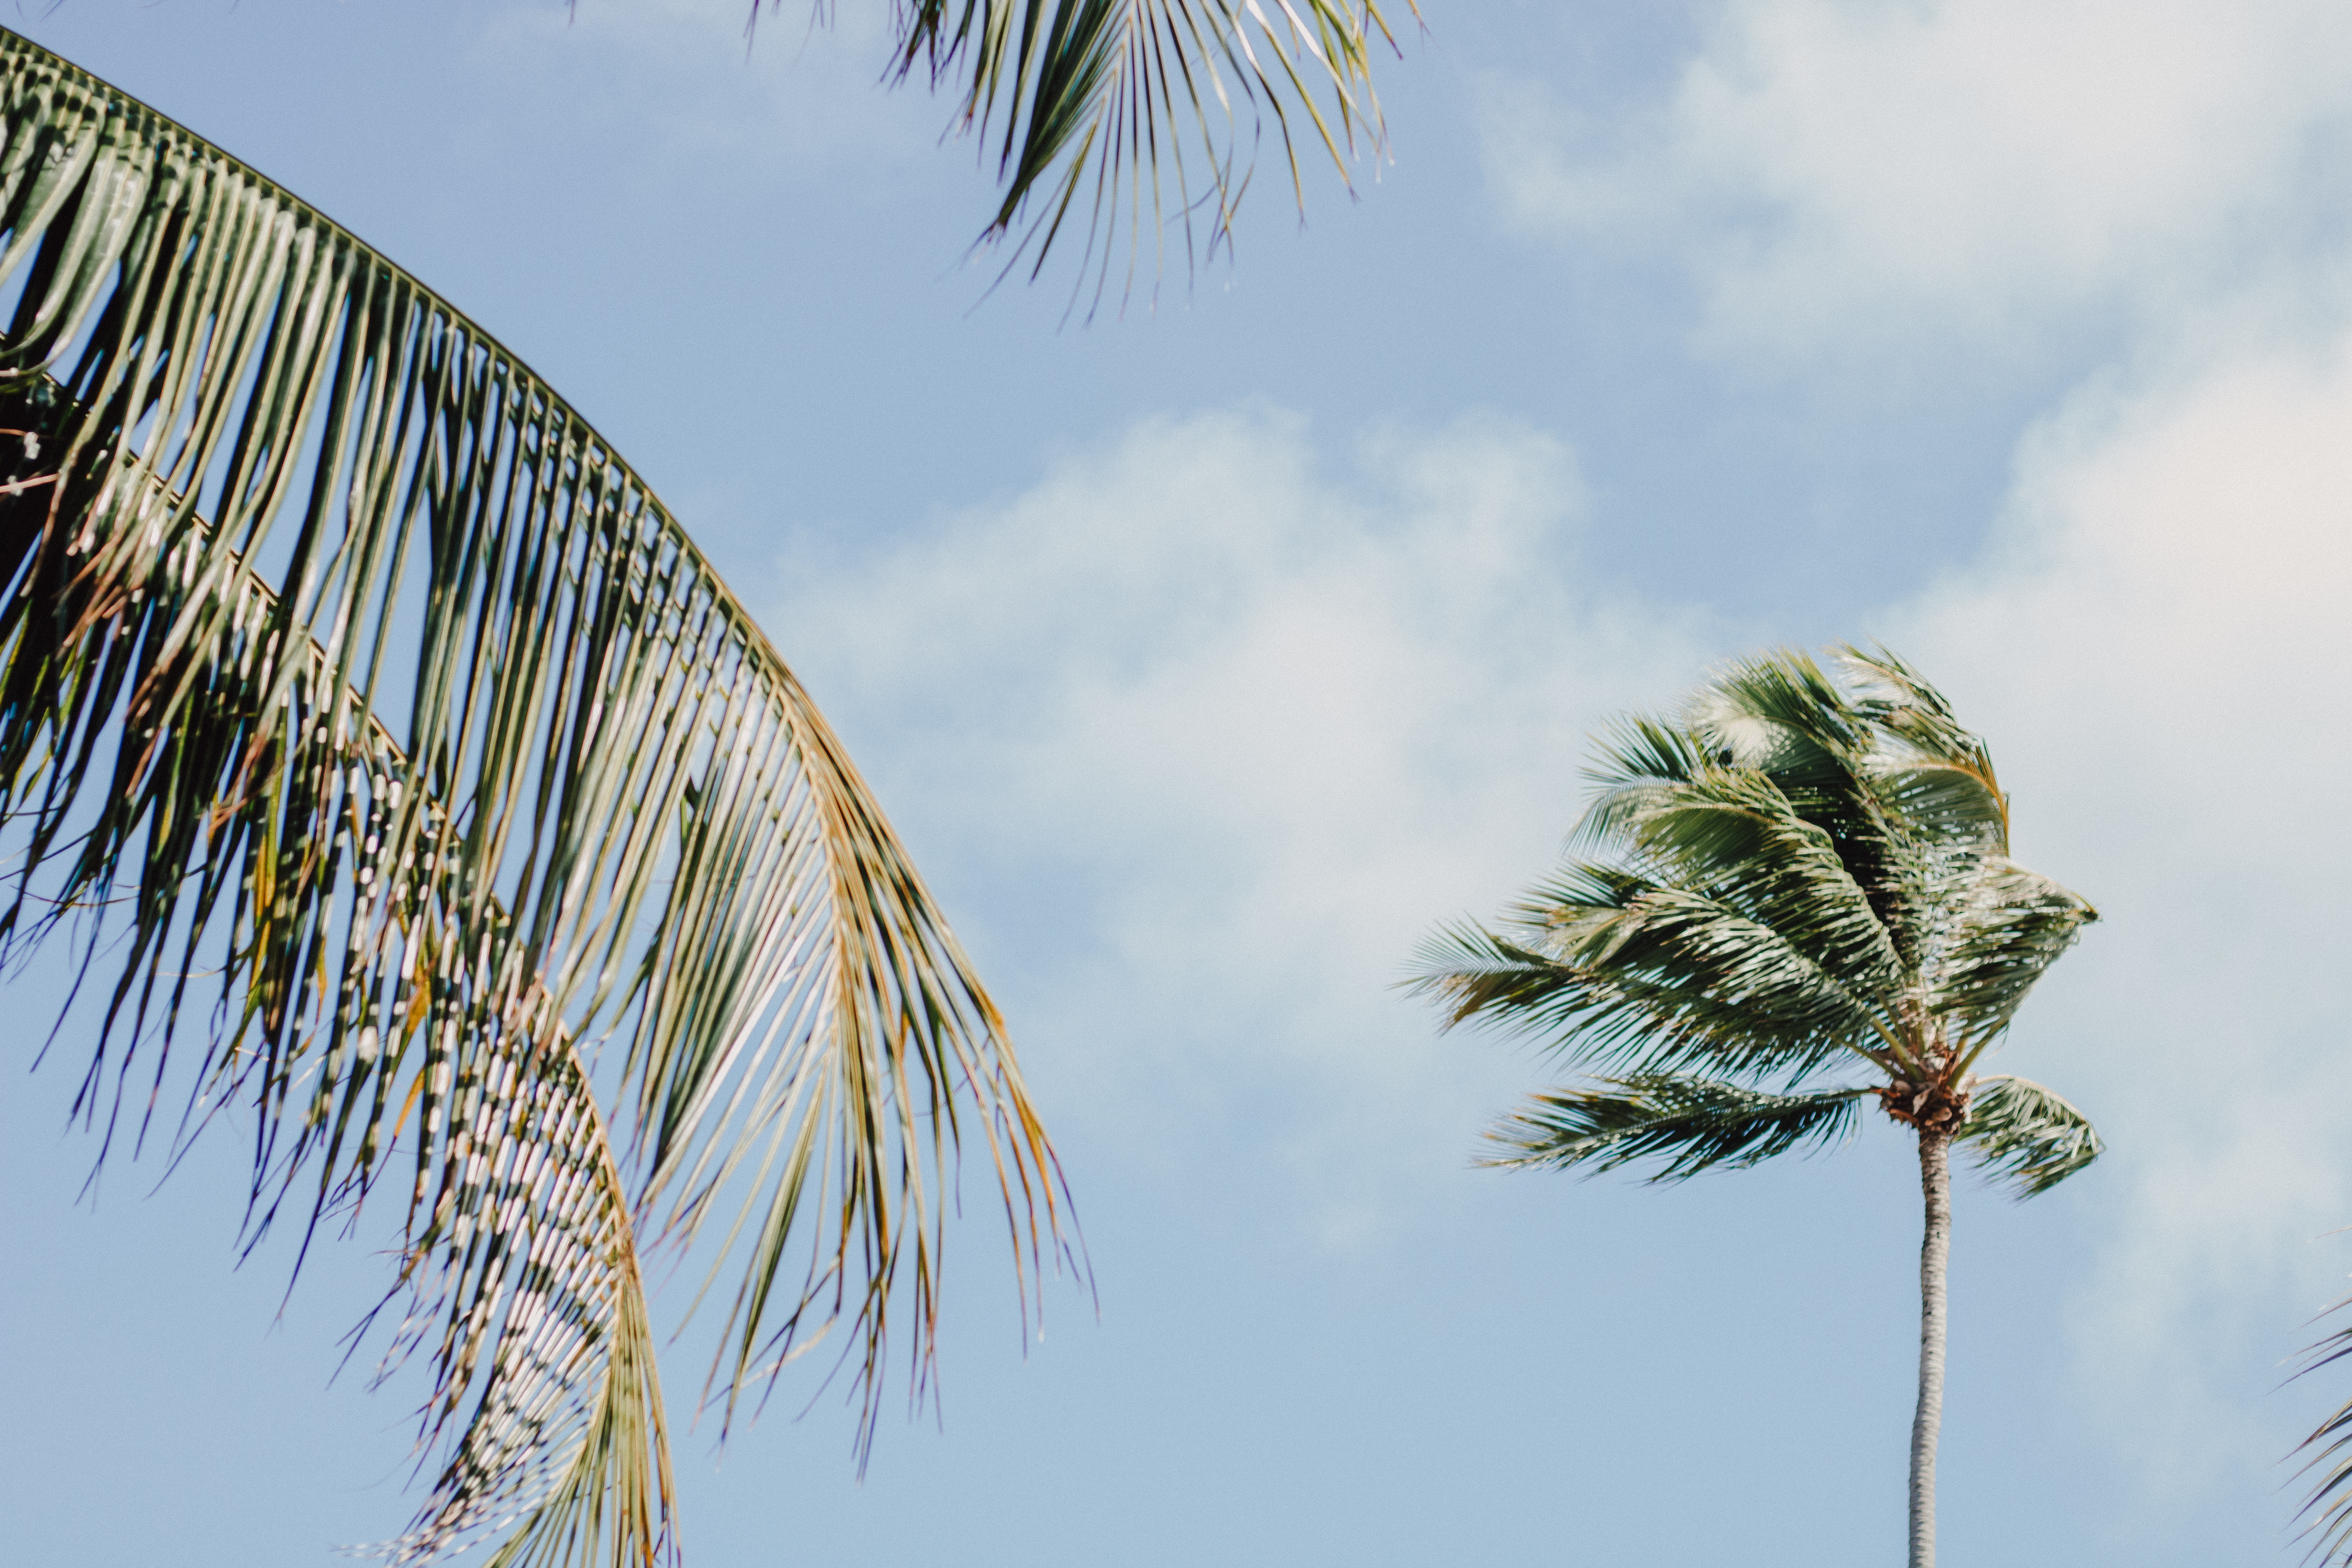 coconut trees during daytime